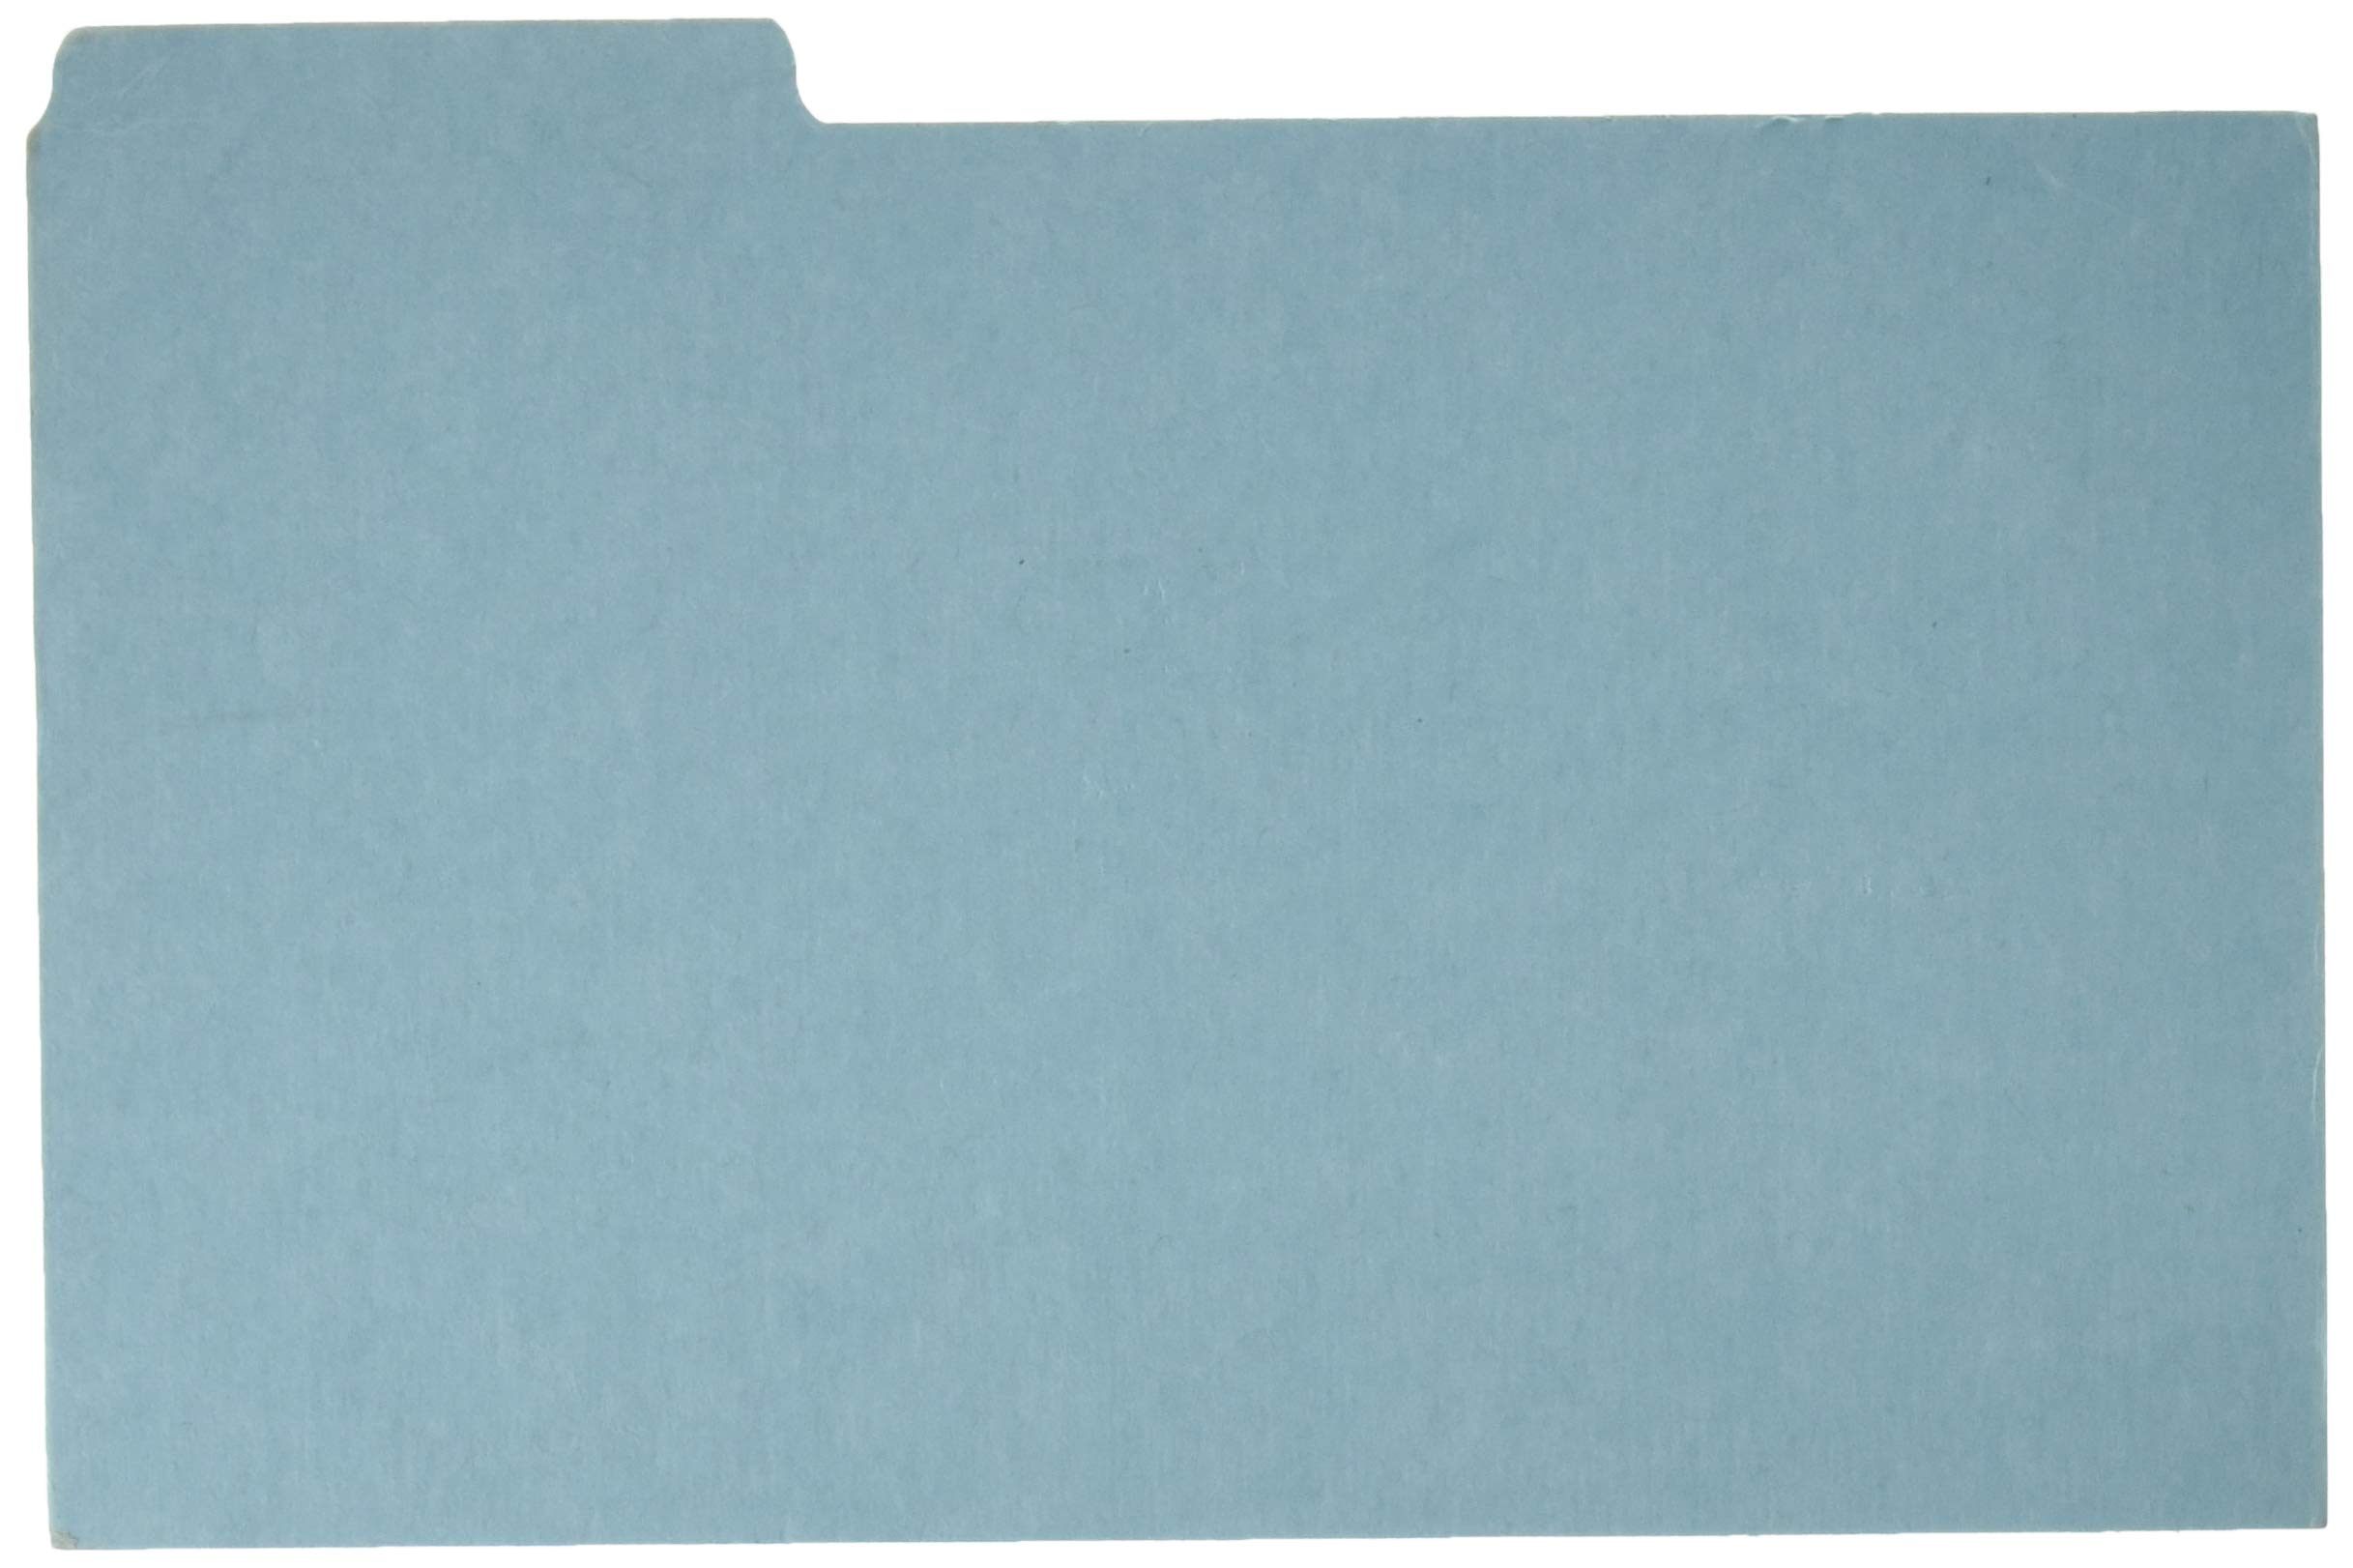 Pressboard Index Card Guides,Blank,1/3 Cut,8''x5'',100/BX,Blue, Sold as 1 Box by Oxford